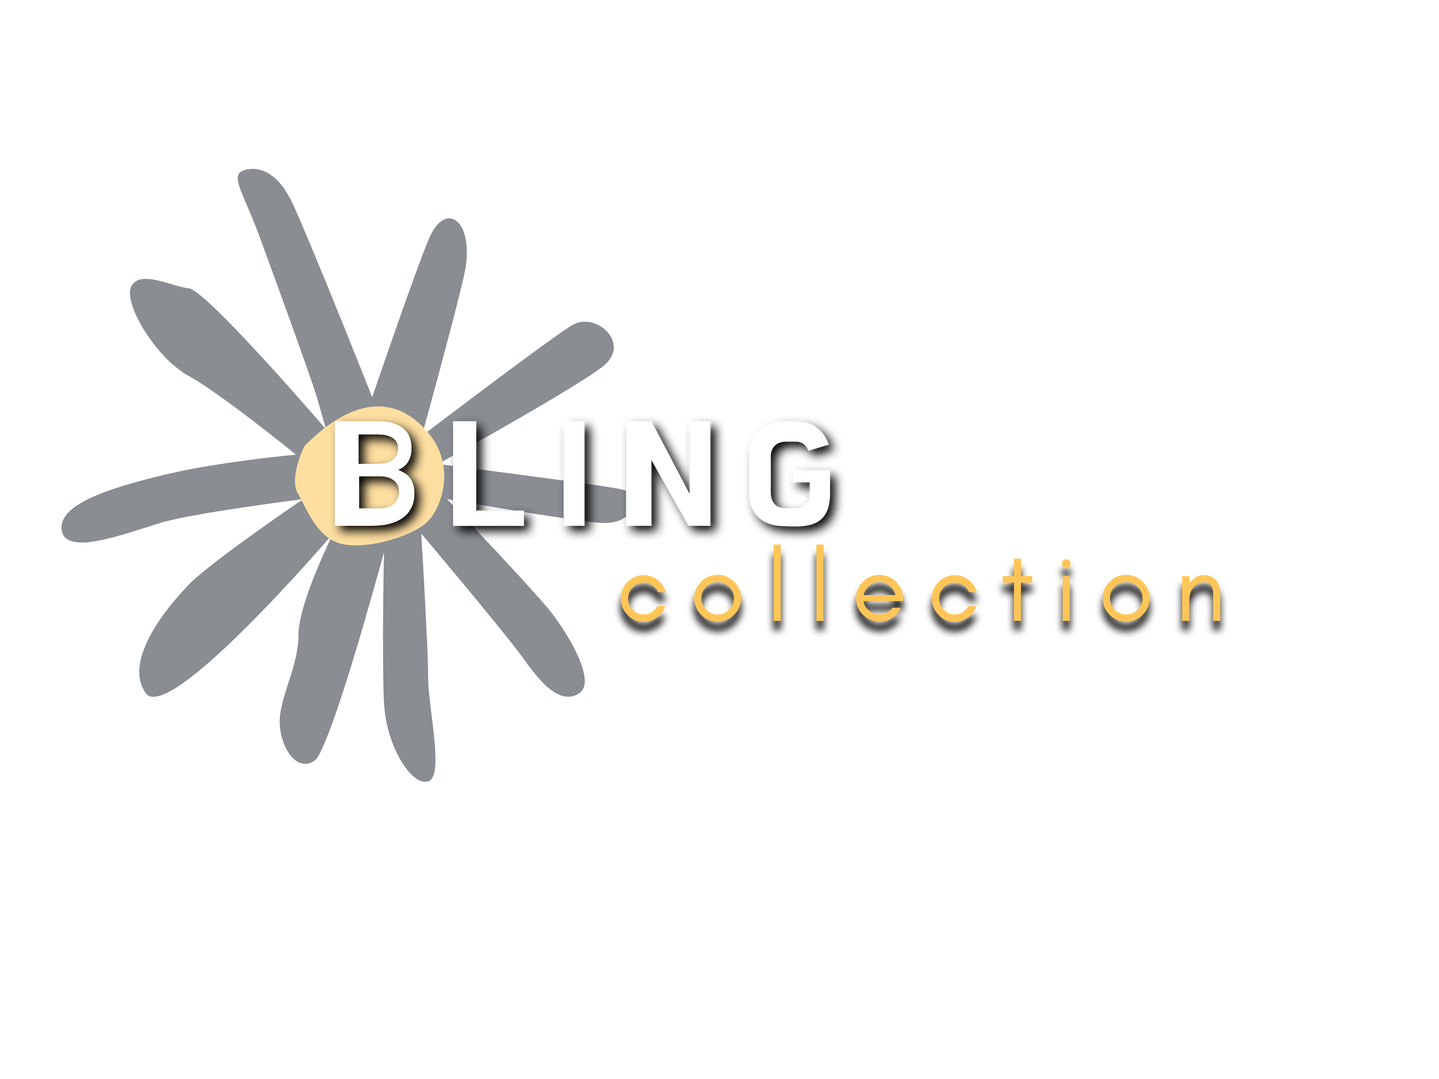 Bling Collection.png